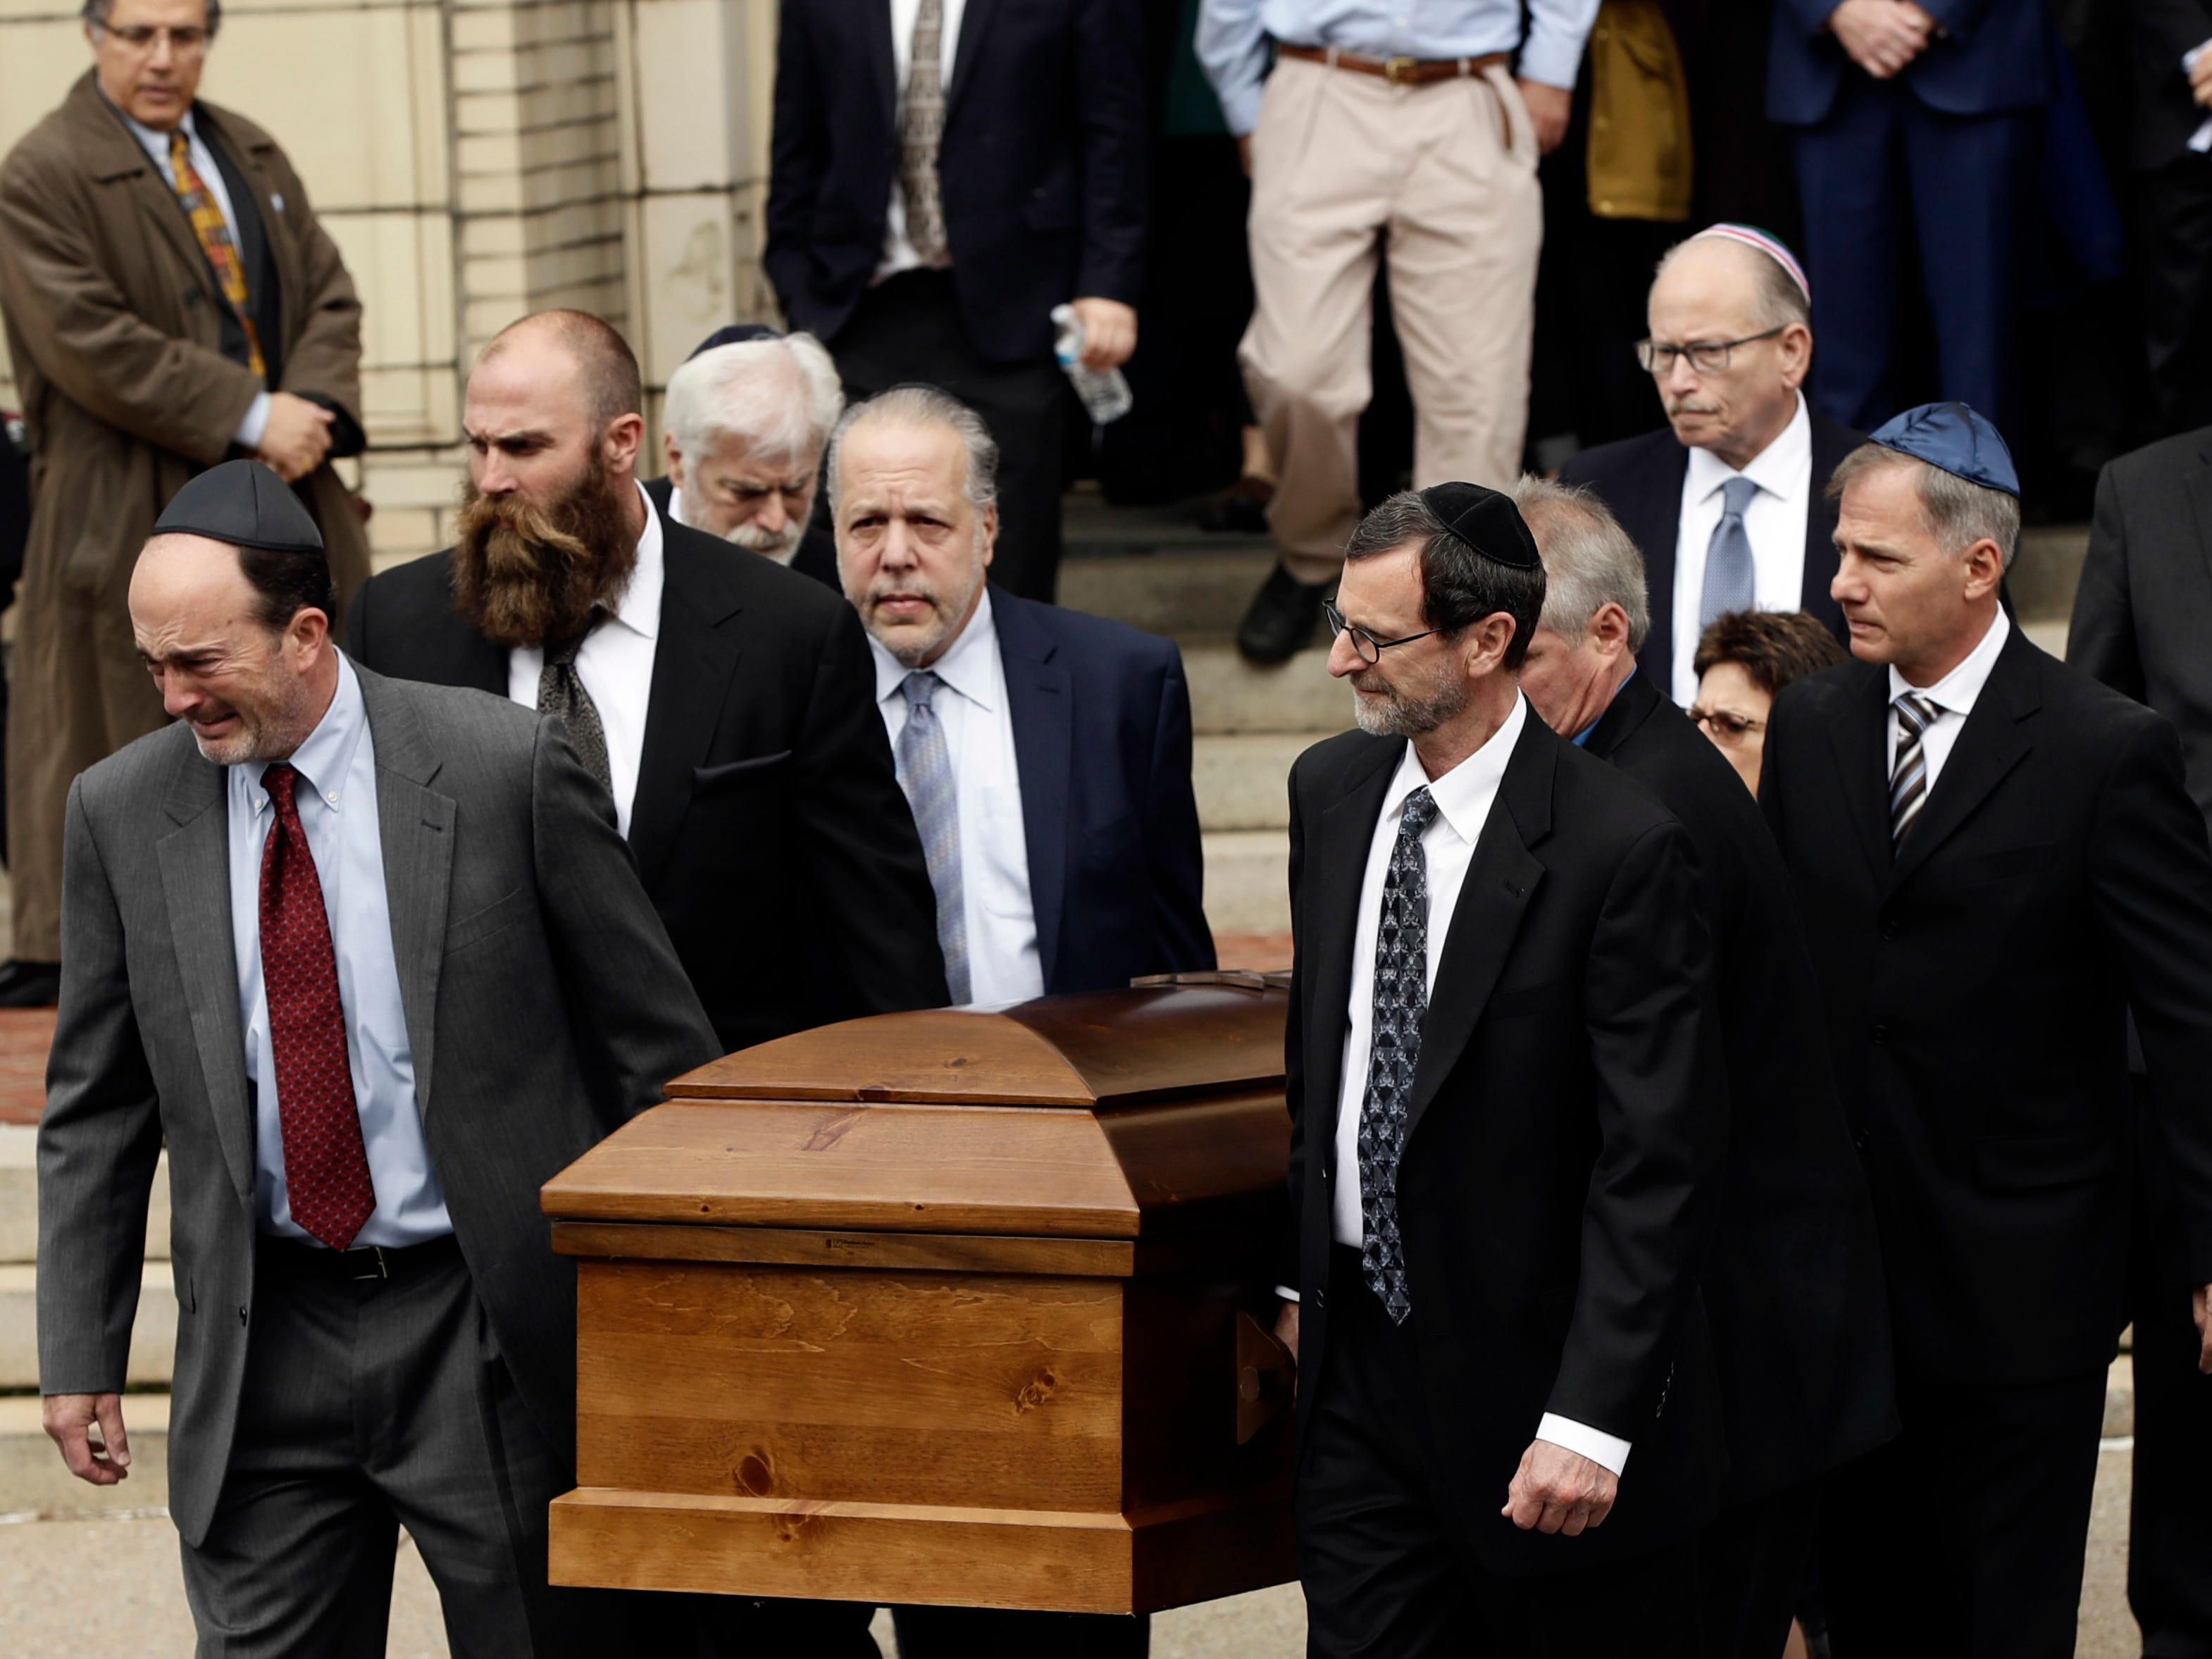 A casket is carried out of Rodef Shalom Congregation after the funeral for brothers Cecil and David Rosenthal, Tuesday, Oct. 30, 2018, in Pittsburgh. The brothers were killed in the mass shooting Saturday at the Tree of Life synagogue.